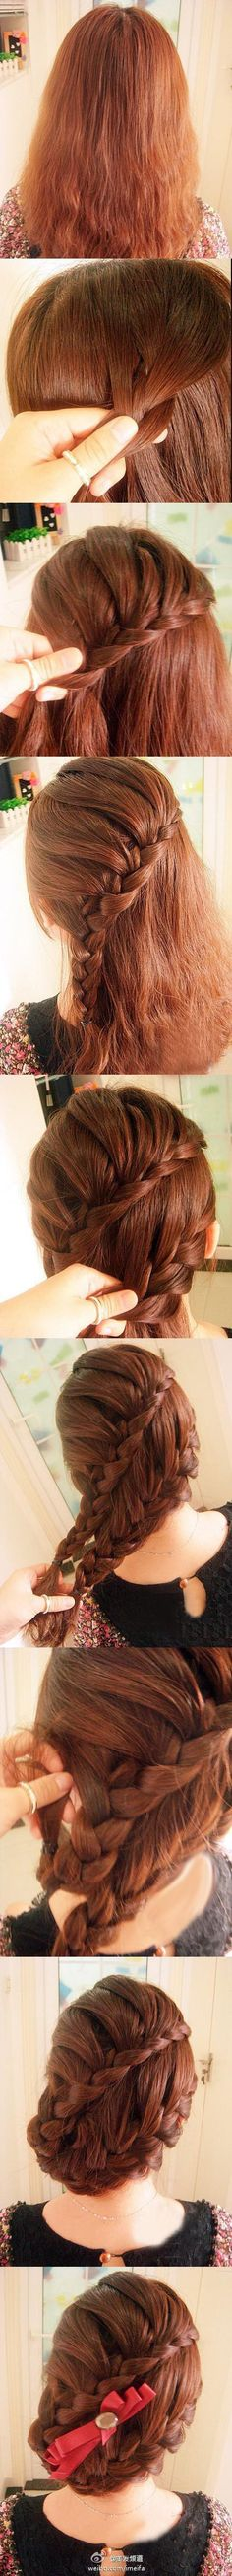 Braided Updo Tutorial >> I would have just kept it at the two braids coming into one finishing braid but cool idea! Popular Hairstyles, Pretty Hairstyles, Wedding Hairstyles, Gray Hairstyles, Saree Hairstyles, Messy Hairstyles, Nappy Hairstyle, Updo Tutorial, Corte Y Color